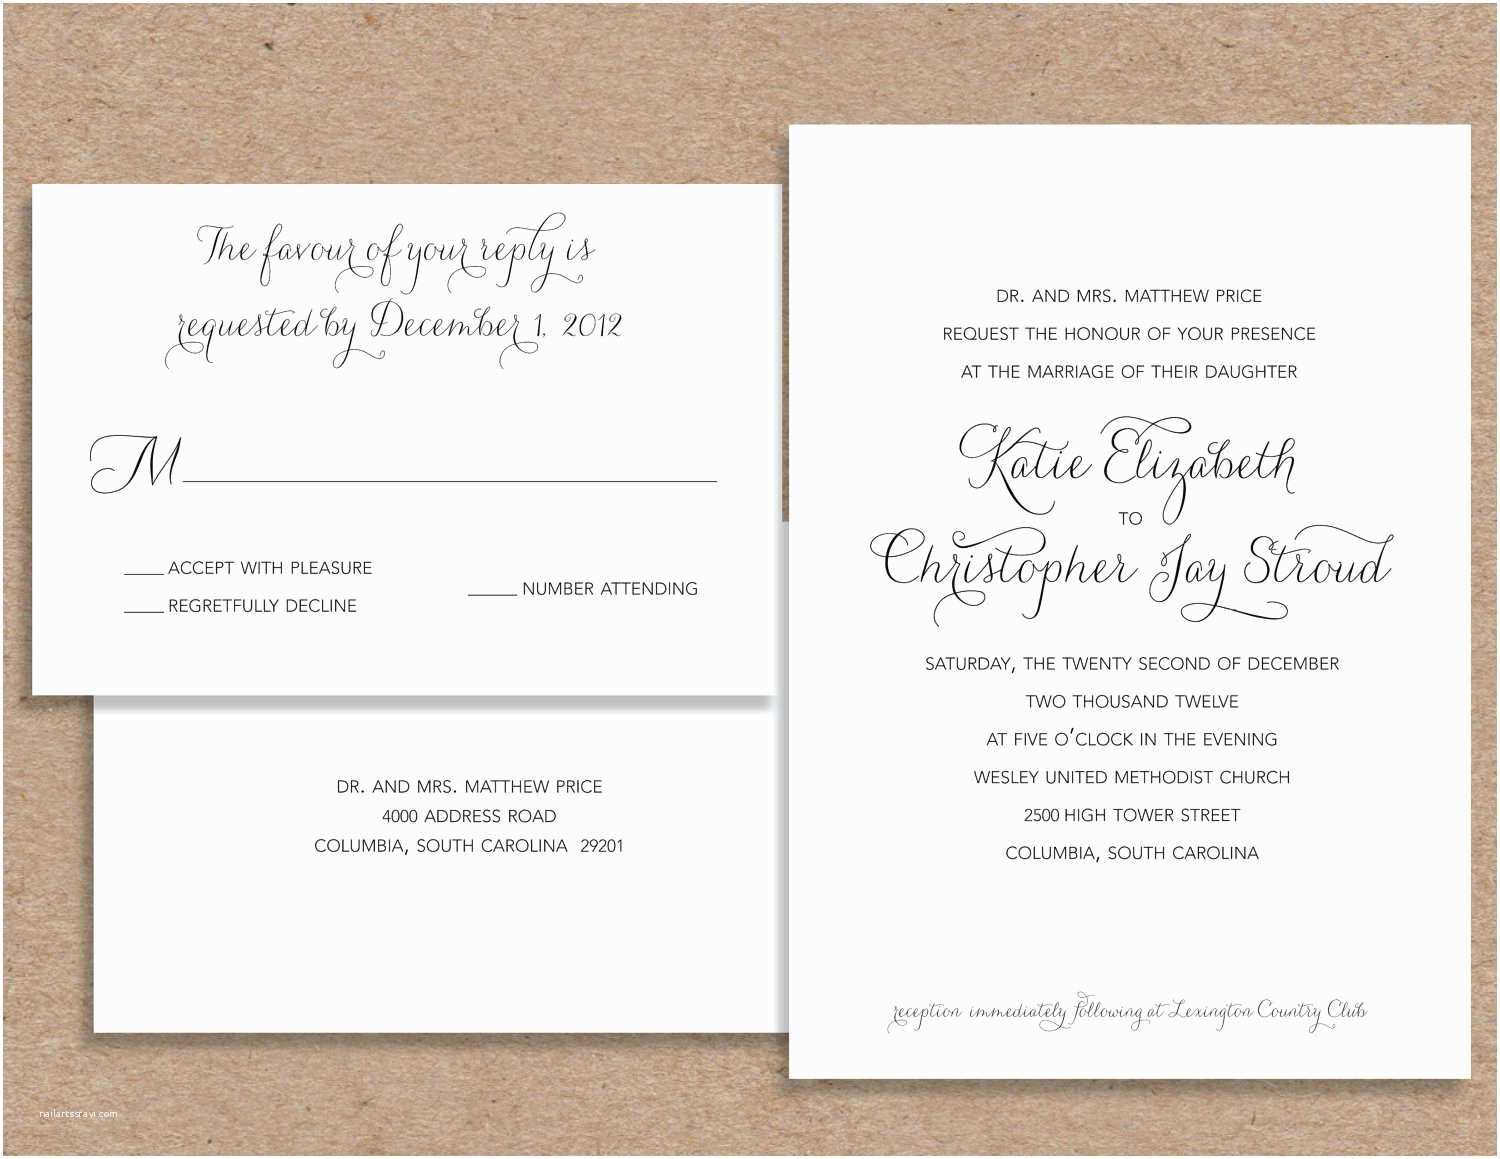 Wedding Invitation Wording Options formal Wedding Invitation Wording